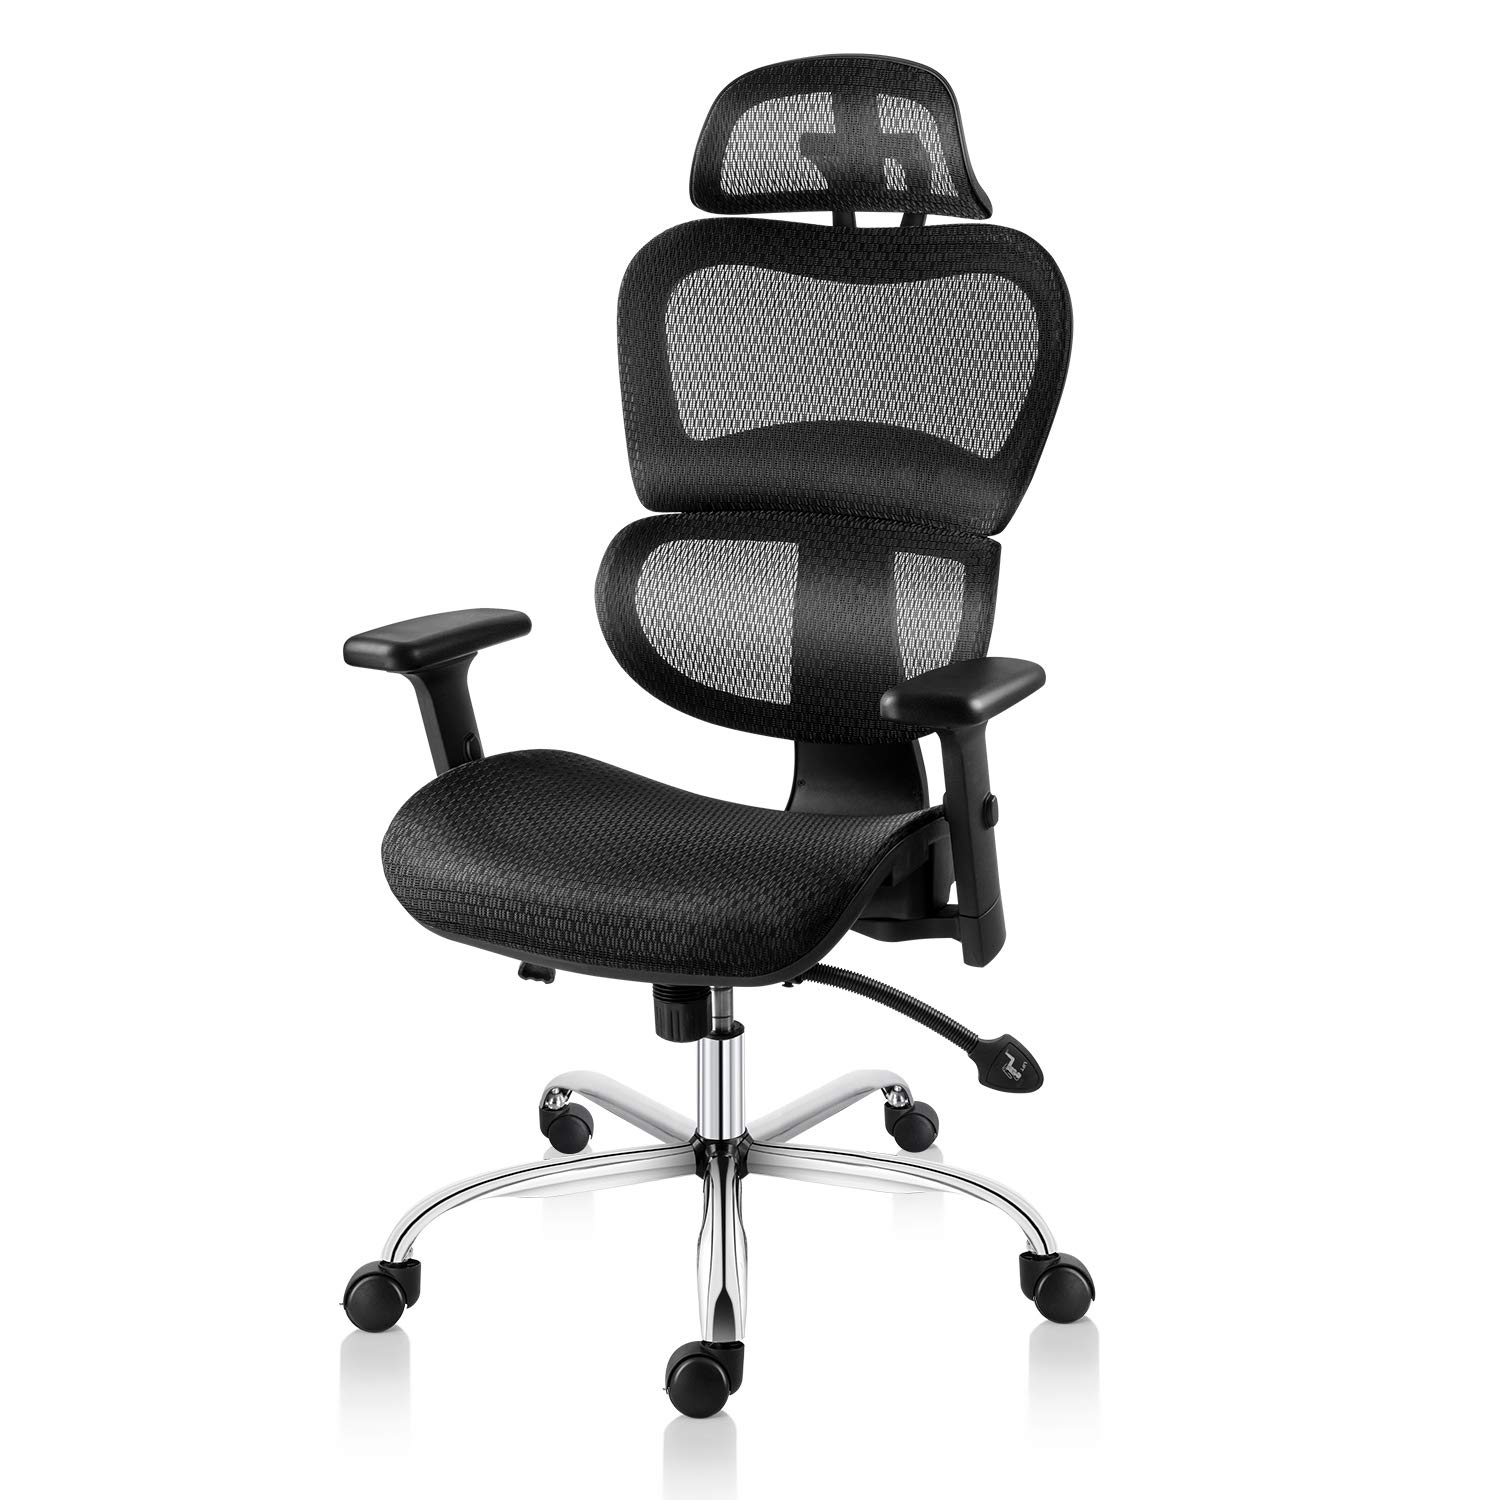 Amazon com mdl furniture ergonomic office chair high back mesh chair with adjustable headrest and lumbar support 3d armrest home office chairblack